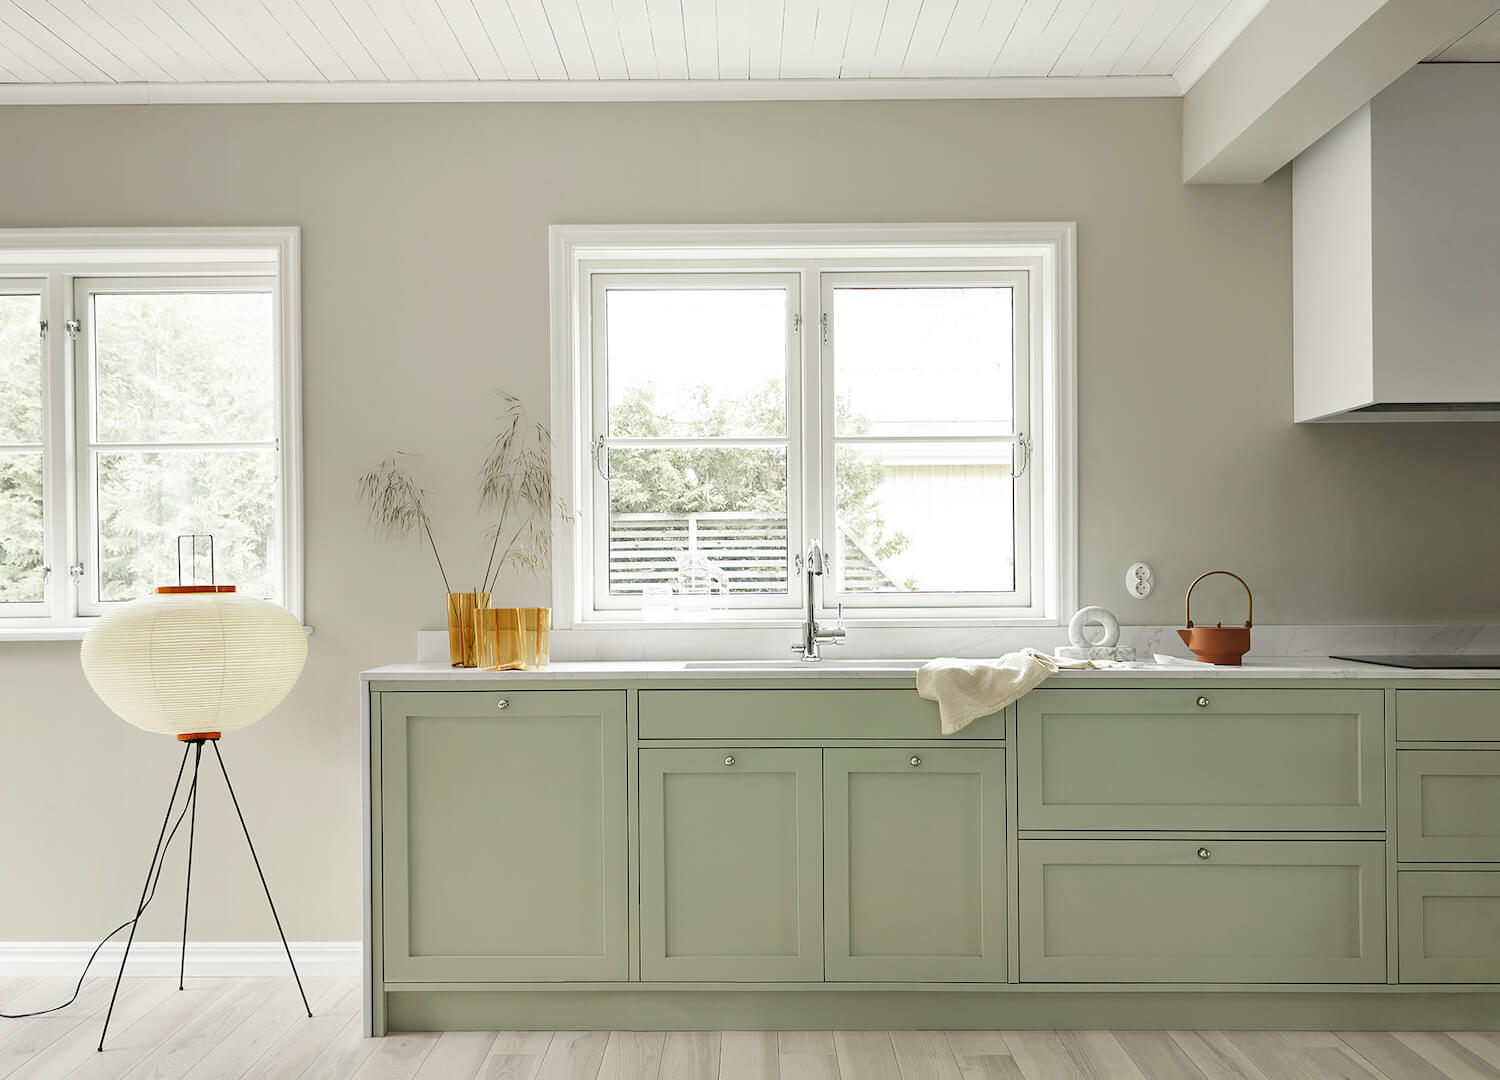 est living nordic style kitchen nordiska kok shaker kitchen inspiration